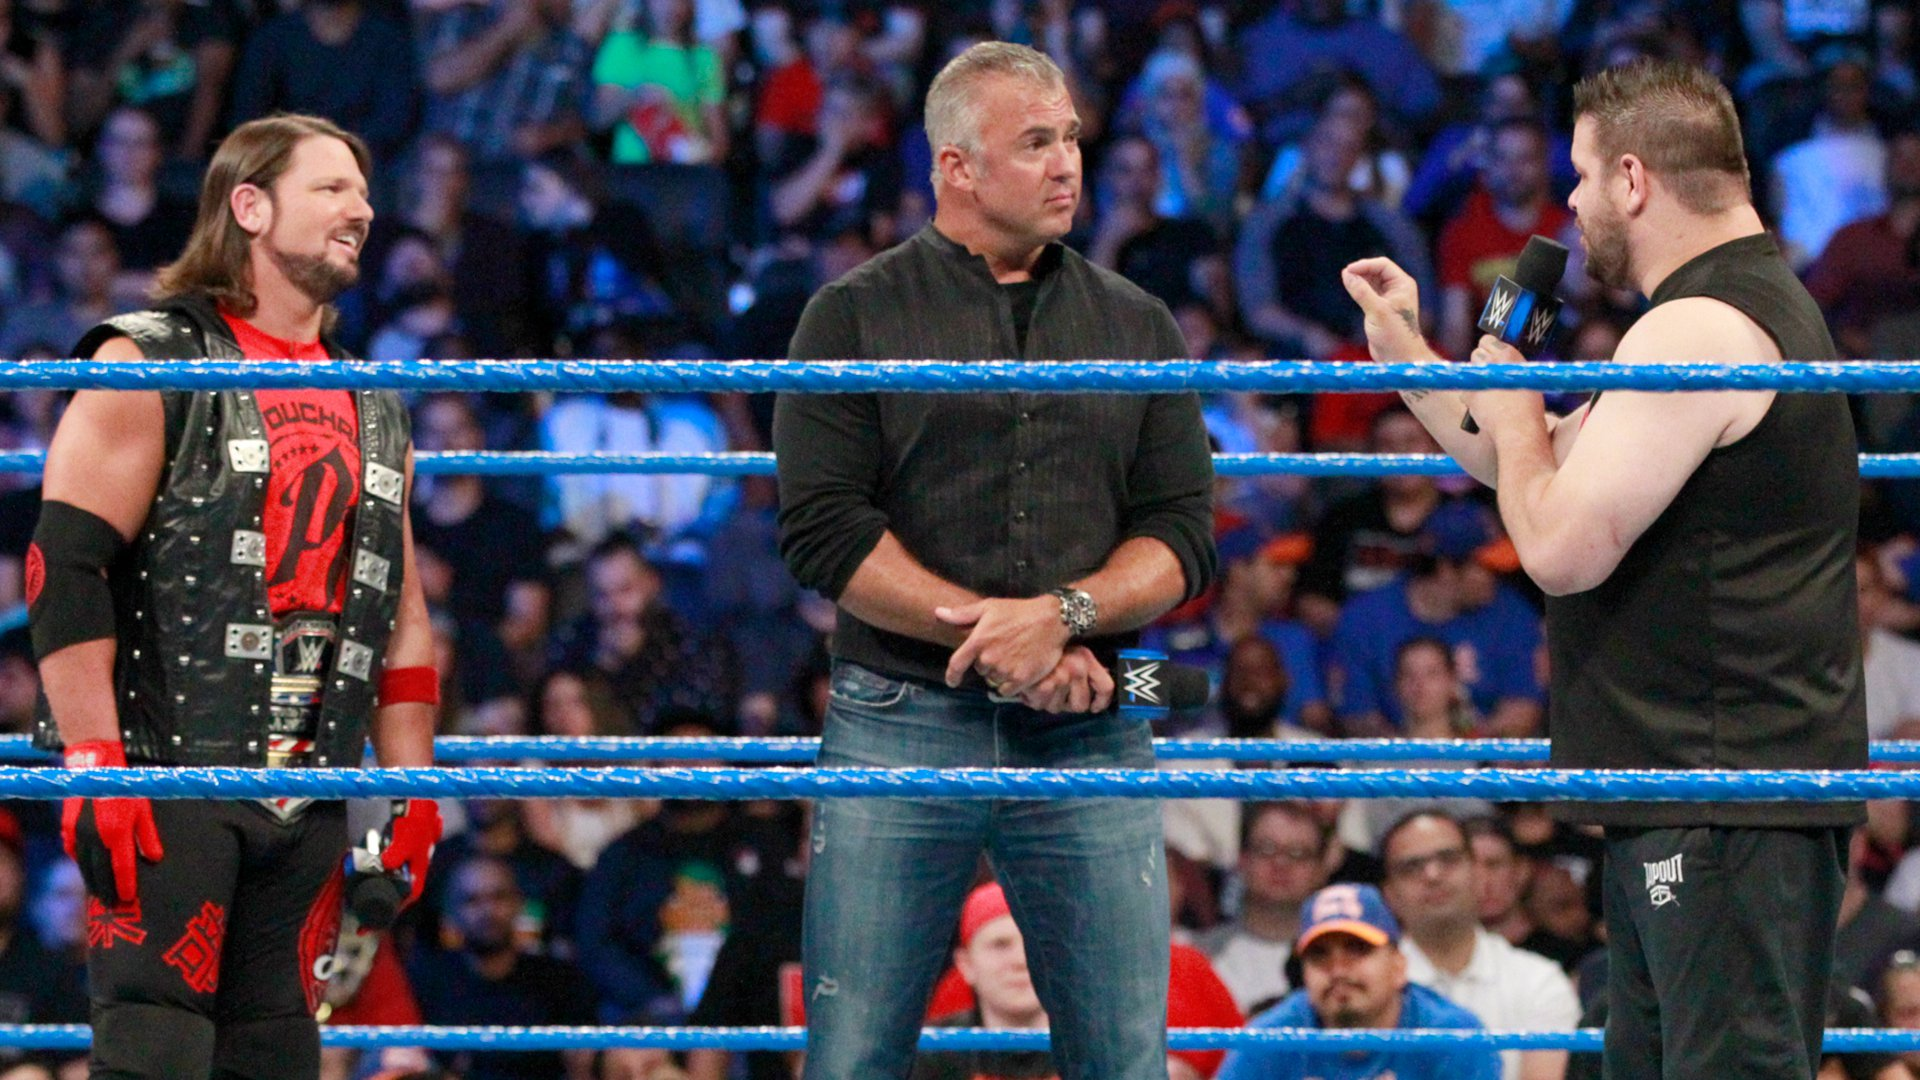 Owens offers Shane an apology and is quick to remind the SmackDown LIVE Commissioner of his frosty past with The Phenomenal One.